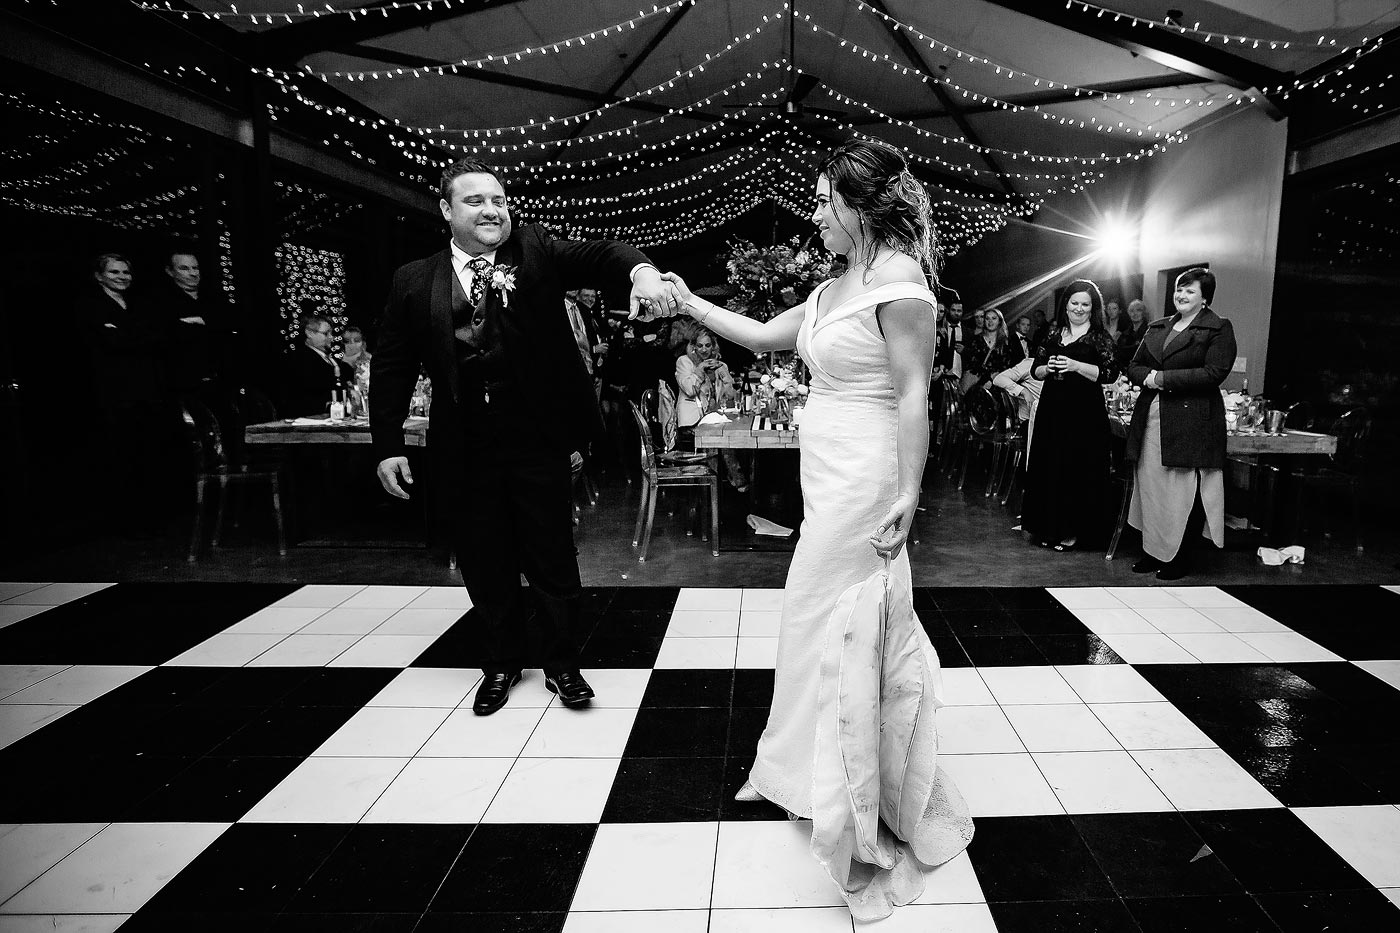 Classic wedding first dance moves on the dancefloor